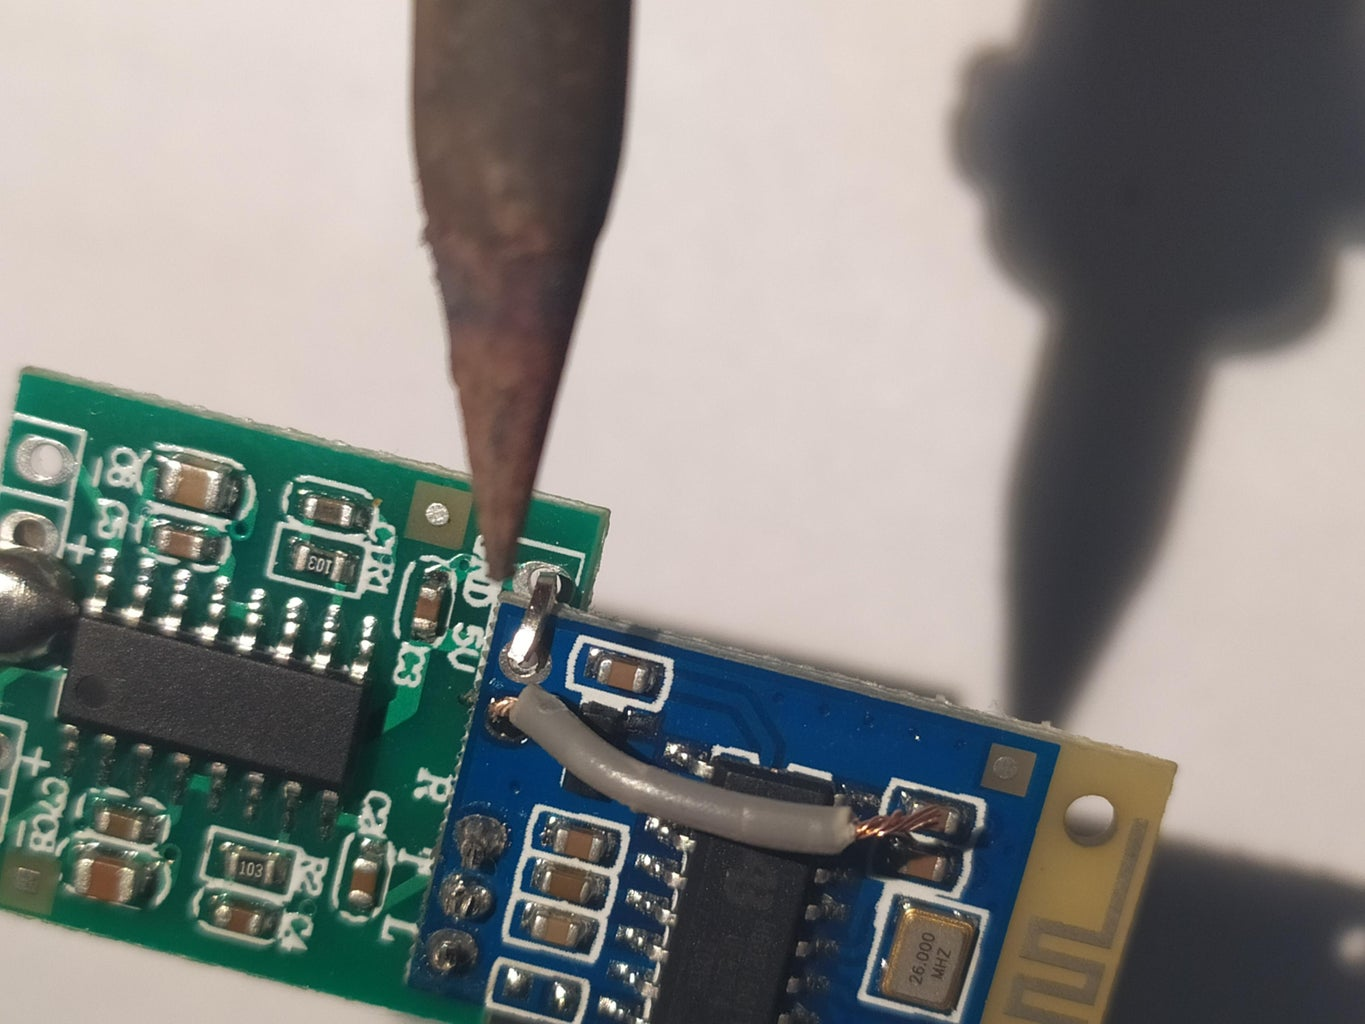 Soldering Vcc and Ground Pins on Bluetooth and Audio Amplifier Board